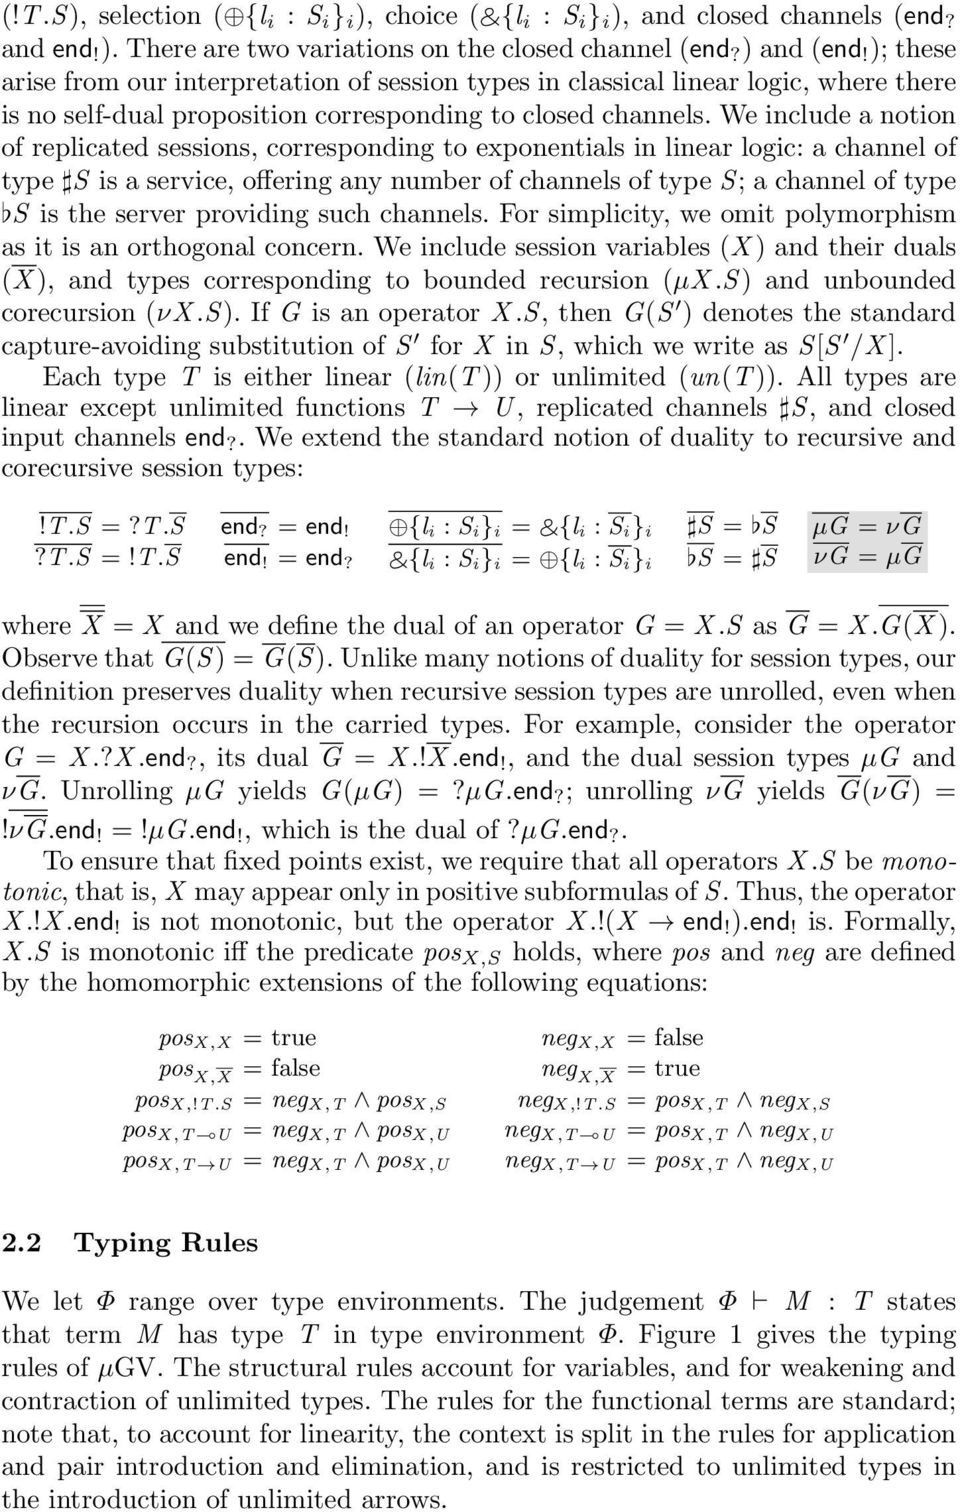 We include a notion of replicated sessions, corresponding to exponentials in linear logic: a channel of type S is a service, offering any number of channels of type S; a channel of type S is the